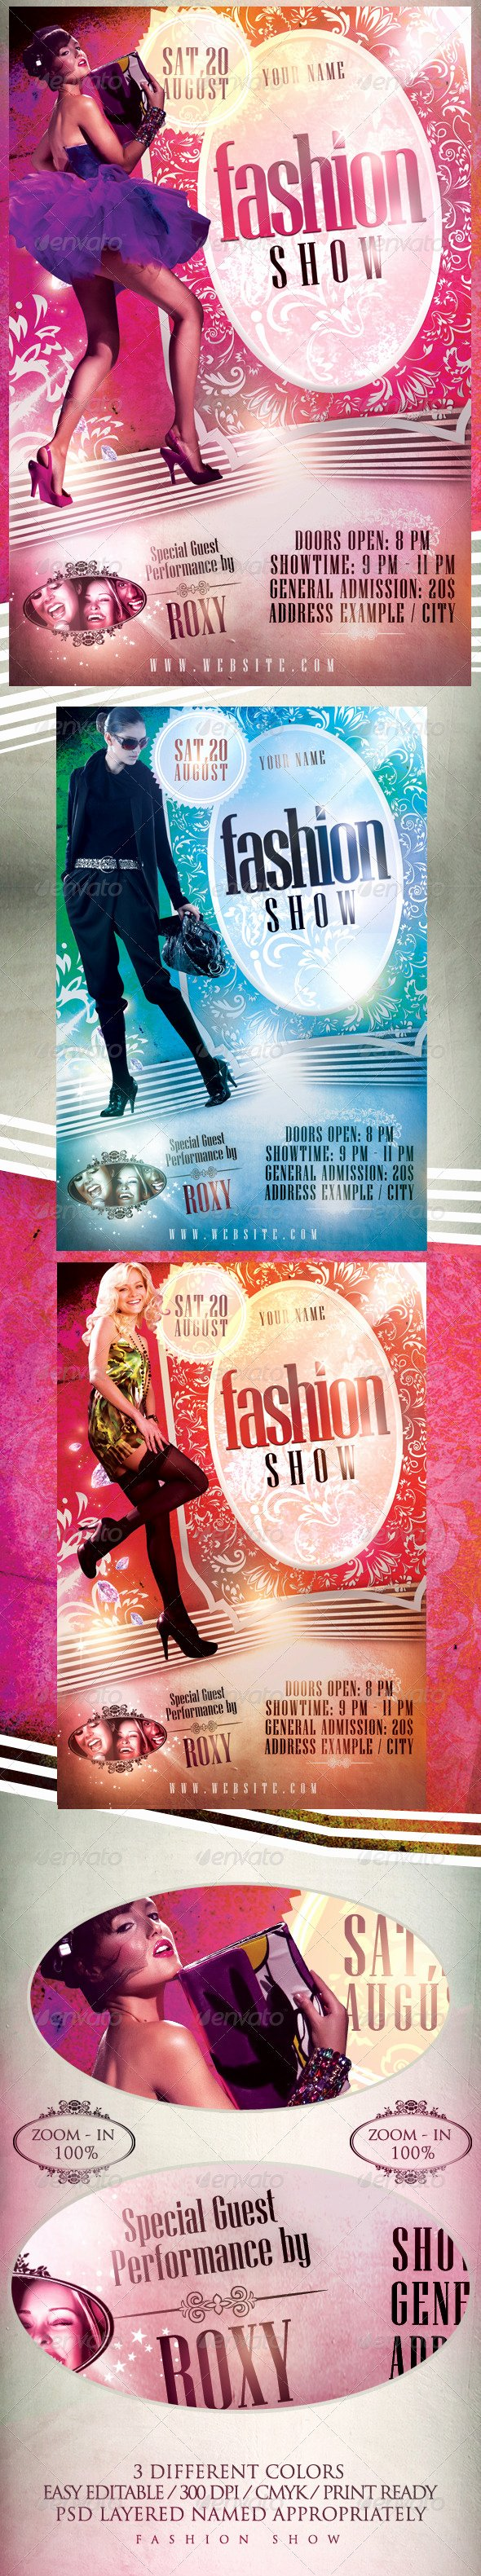 Fashion Show Flyer Template Free Awesome Fashion Show Flyer Template On Behance